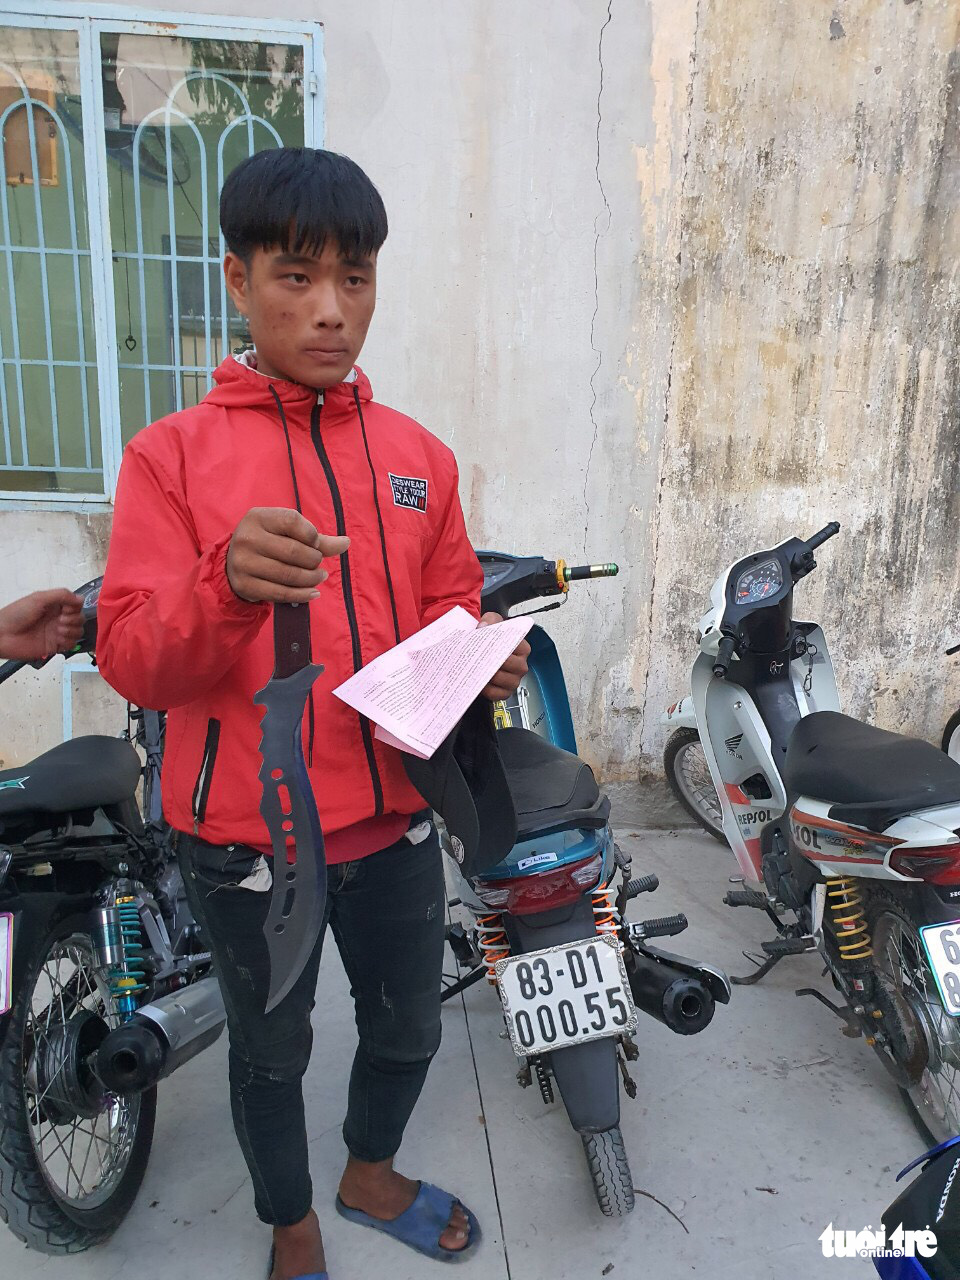 One of the suspects carries along a machete. Photo: H. T. / Tuoi Tre